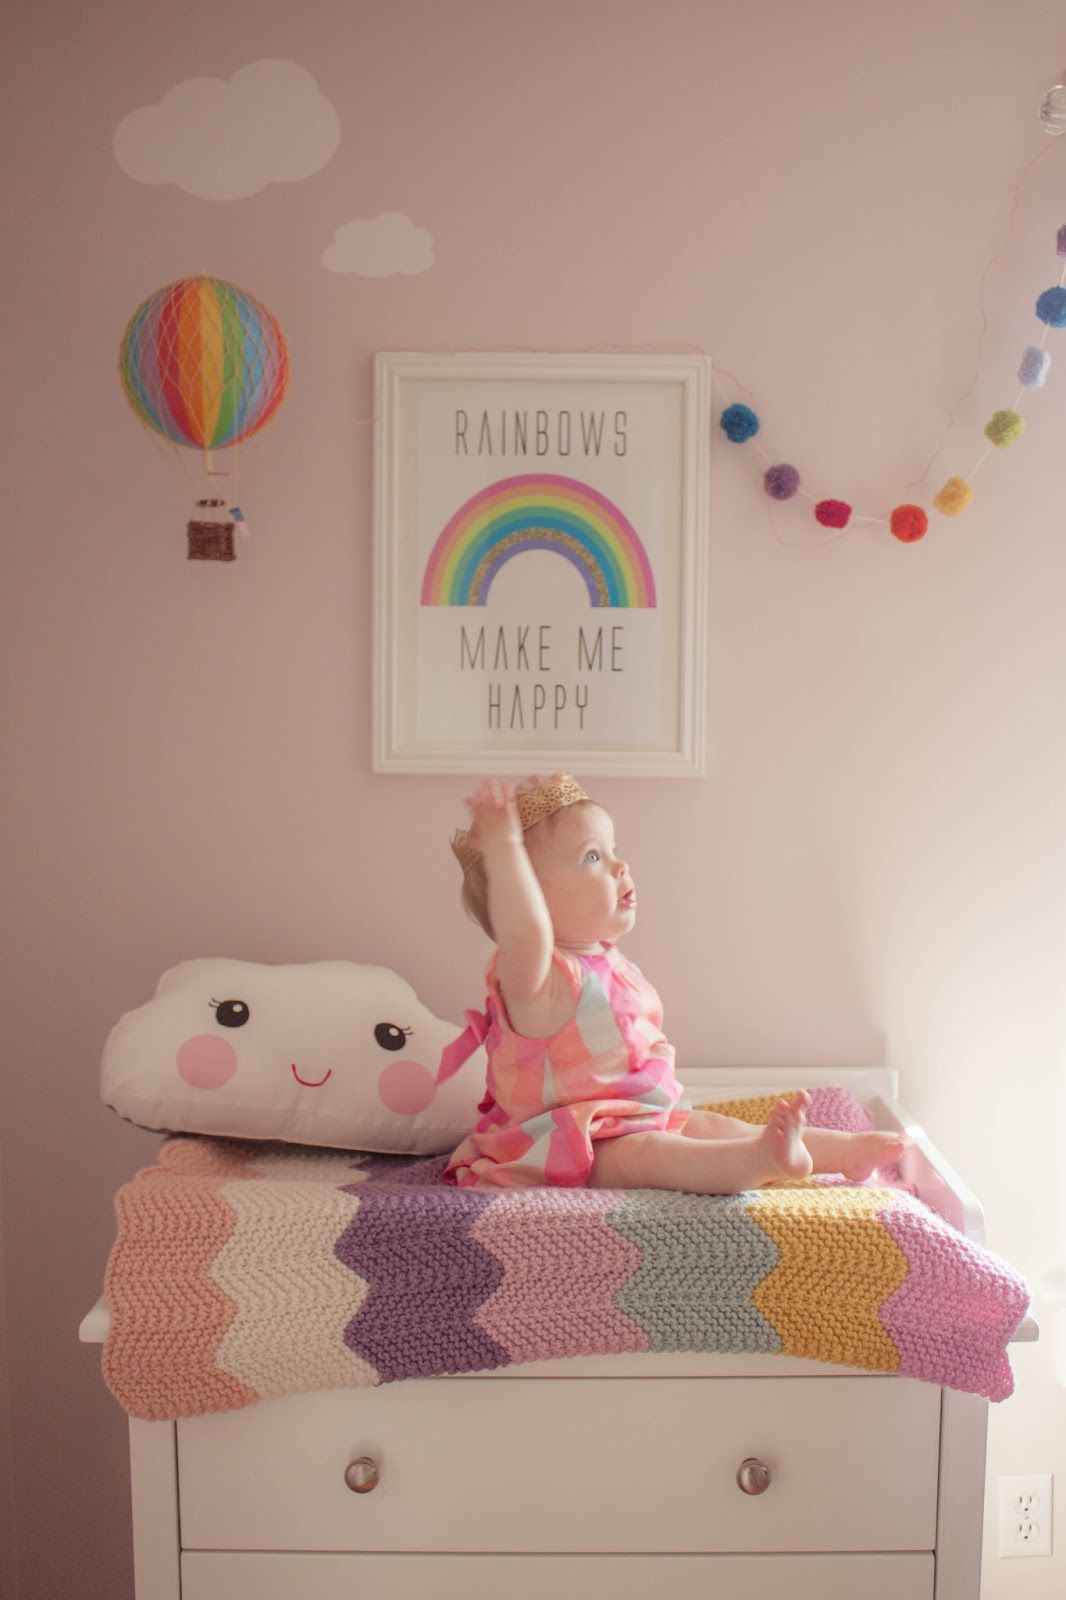 Rainbow Kids Rooms Rainbow Nursery Girls Baby Air Balloon Cloud Interior